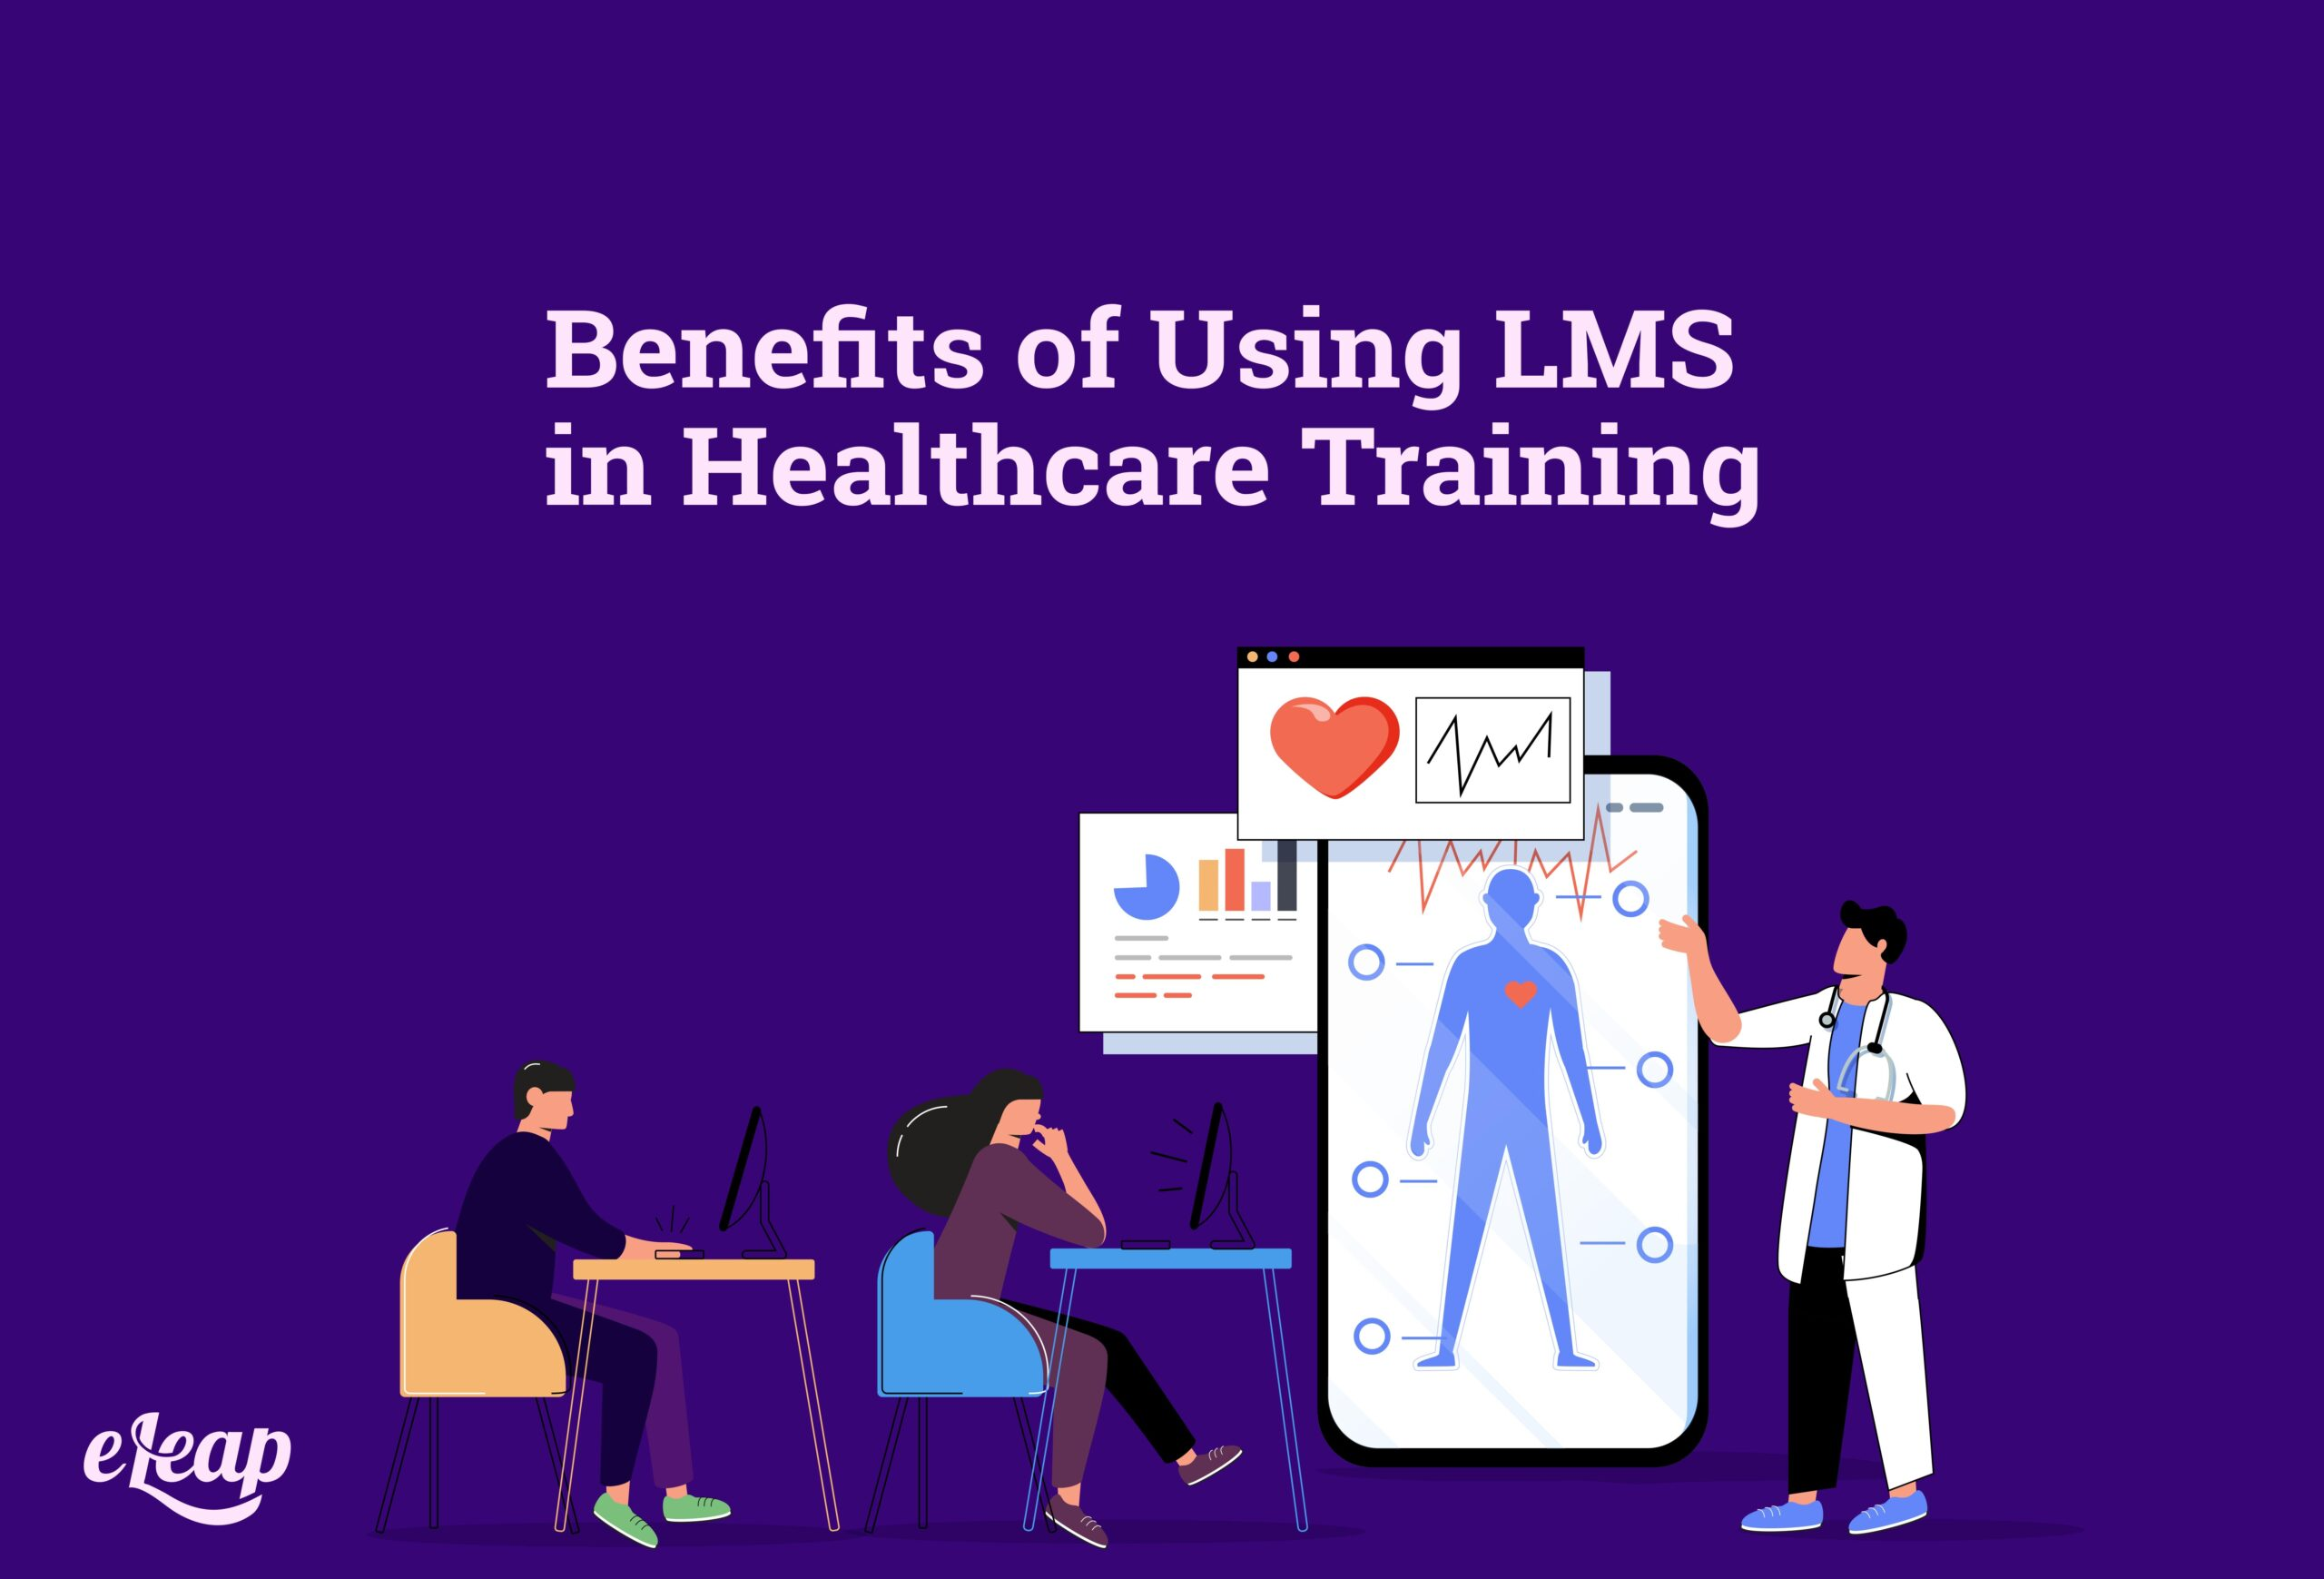 Benefits of Using LMS in Healthcare Training